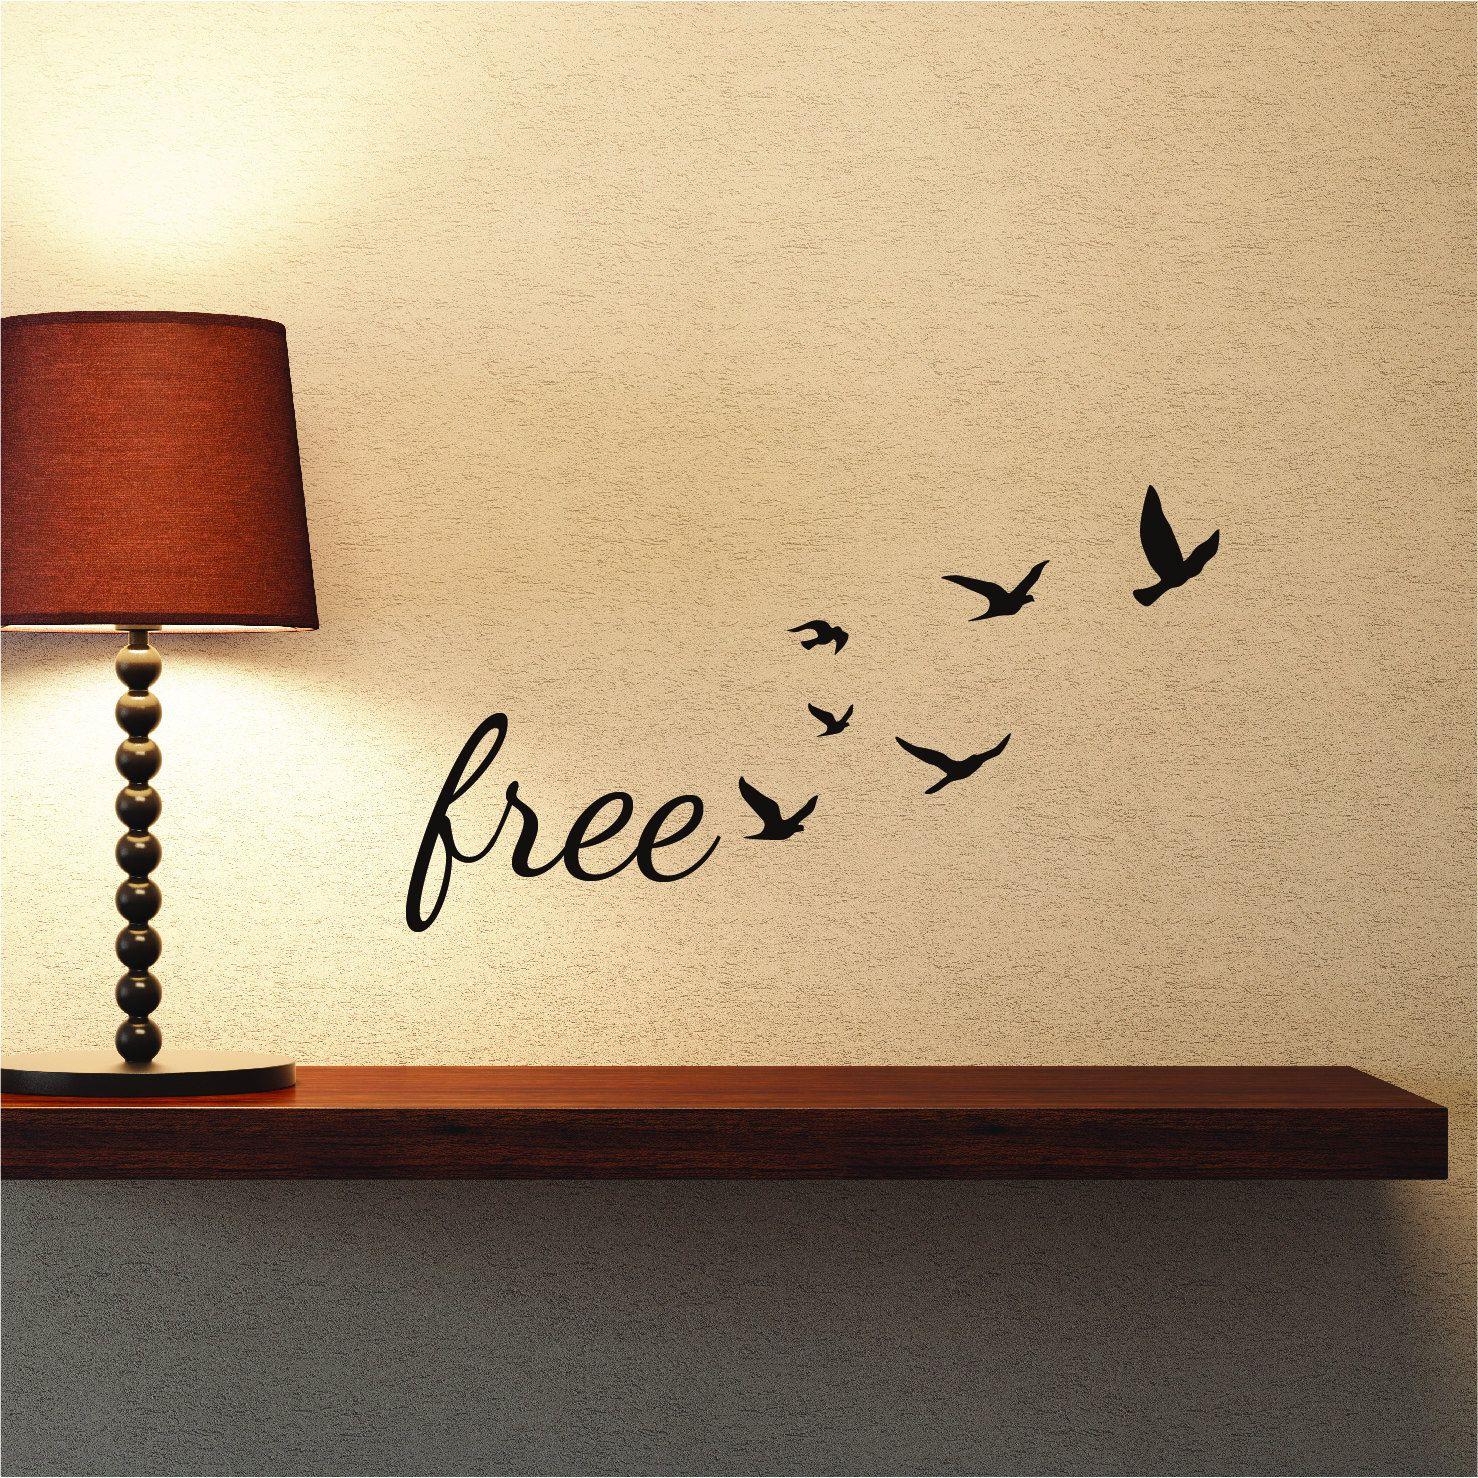 Wall Decor Sayings freedom wall decal quote with flock of flying birds